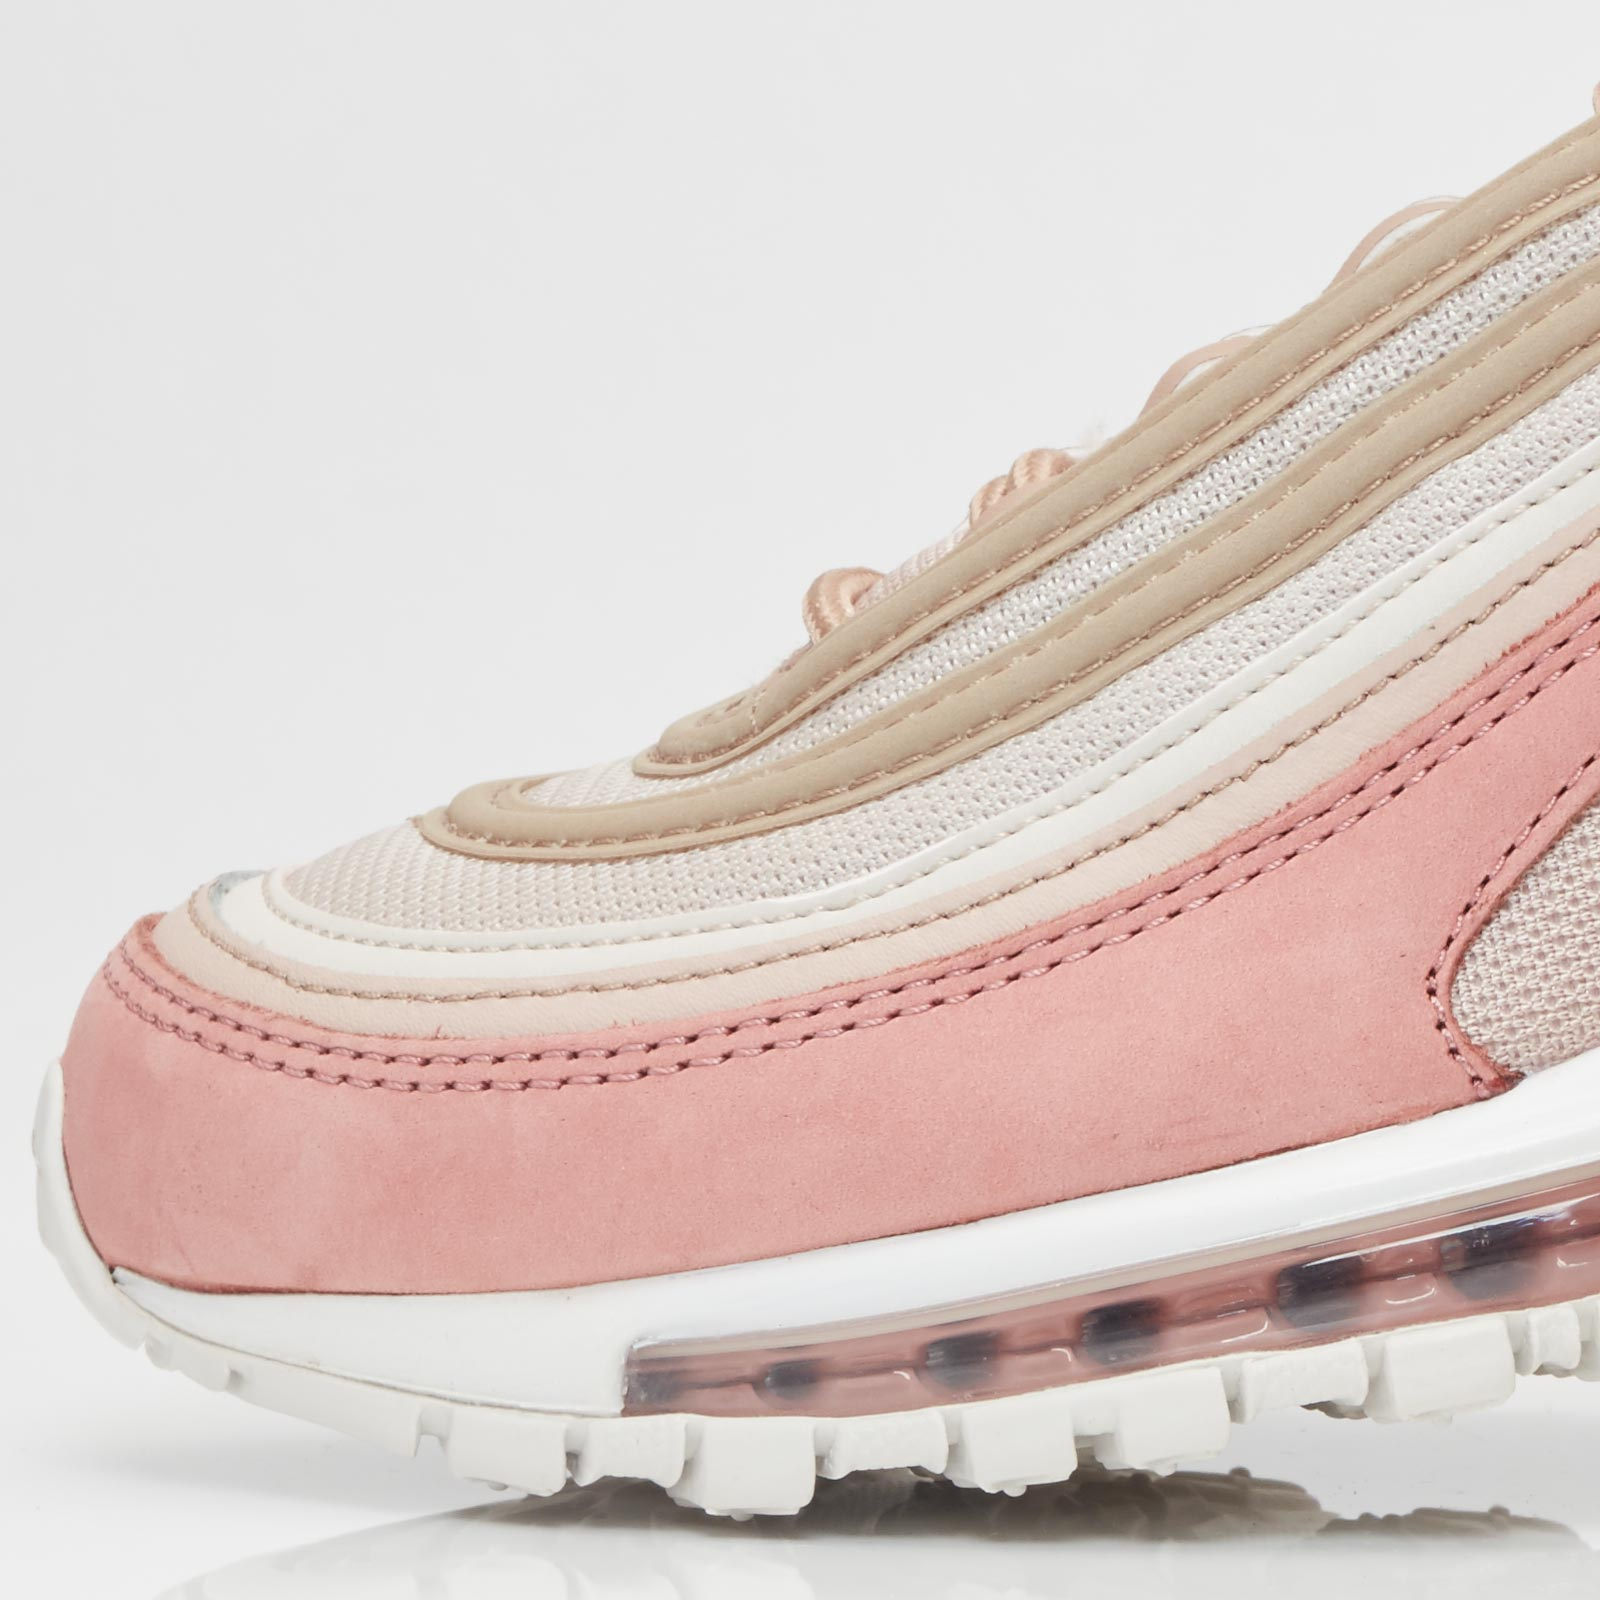 the latest 4d8ed e5538 Nike Air Max 97 Premium - 312834-200 - Sneakersnstuff | sneakers ...